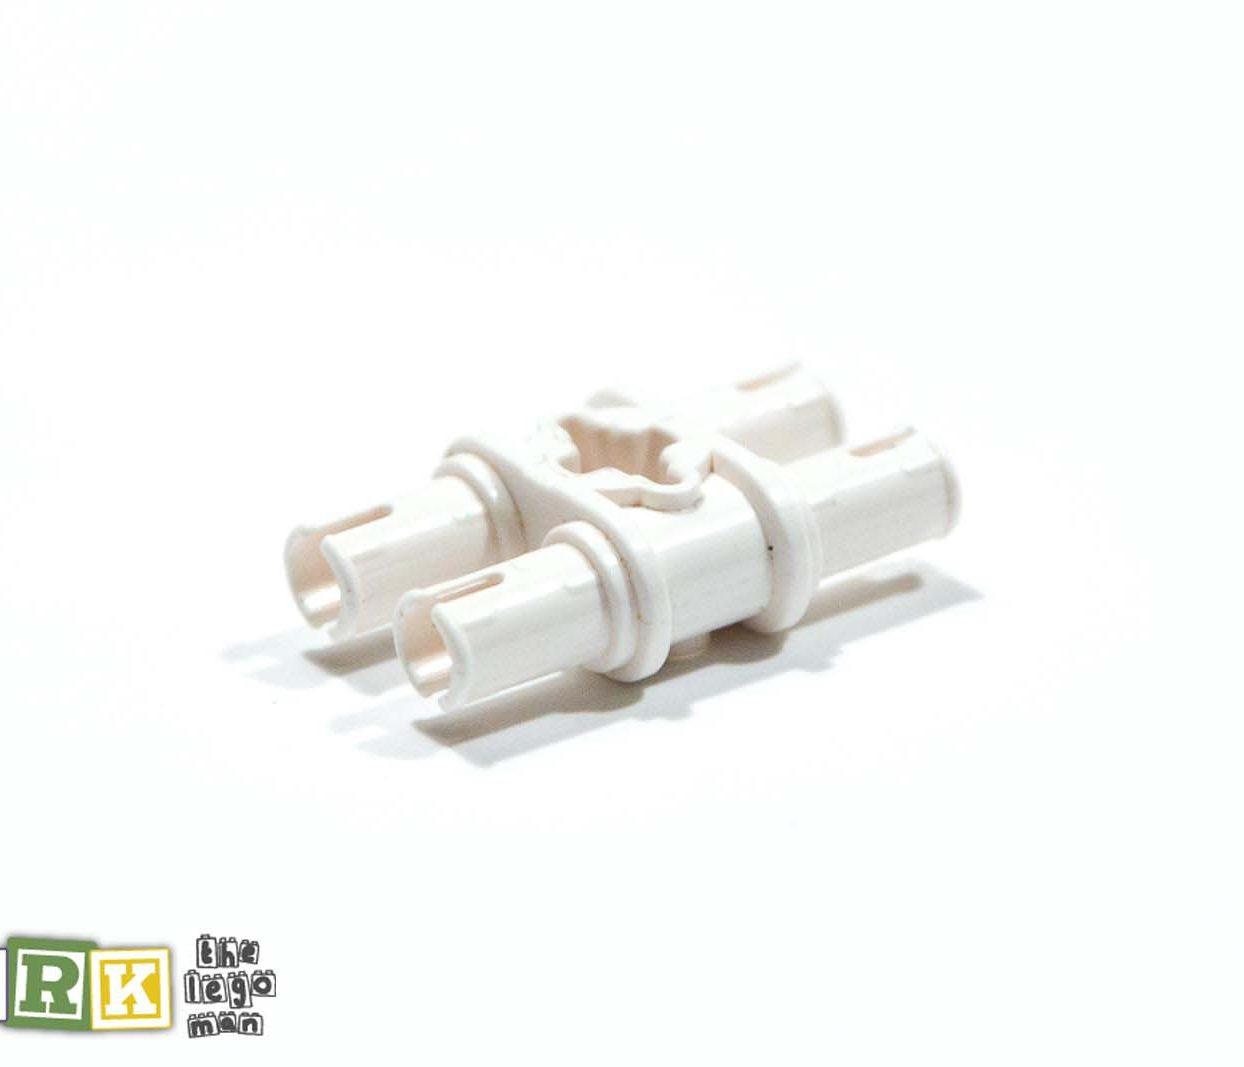 Lego 4118979 32138 1x White Module Bush Double Peg